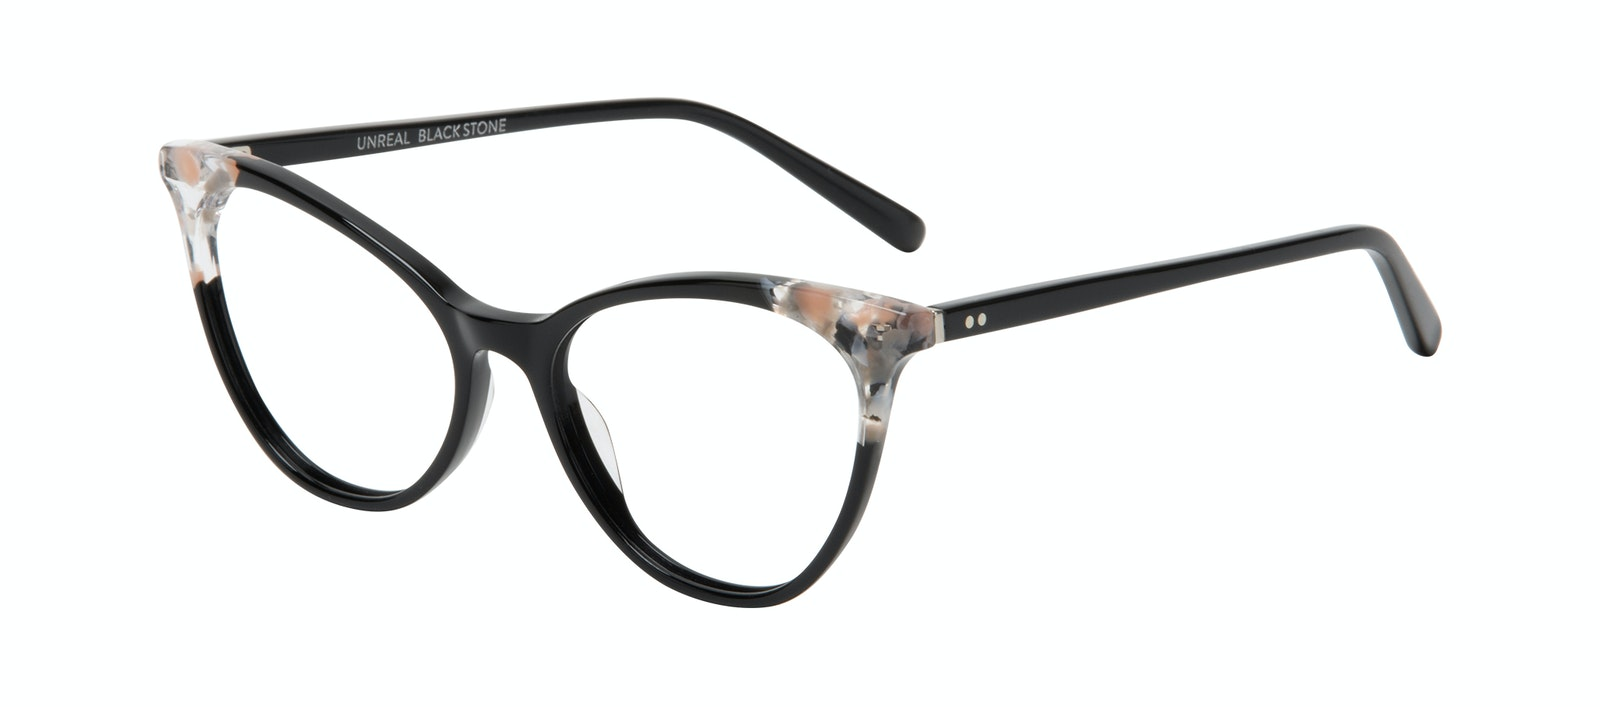 Affordable Fashion Glasses Cat Eye Eyeglasses Women Unreal Black Stone Tilt